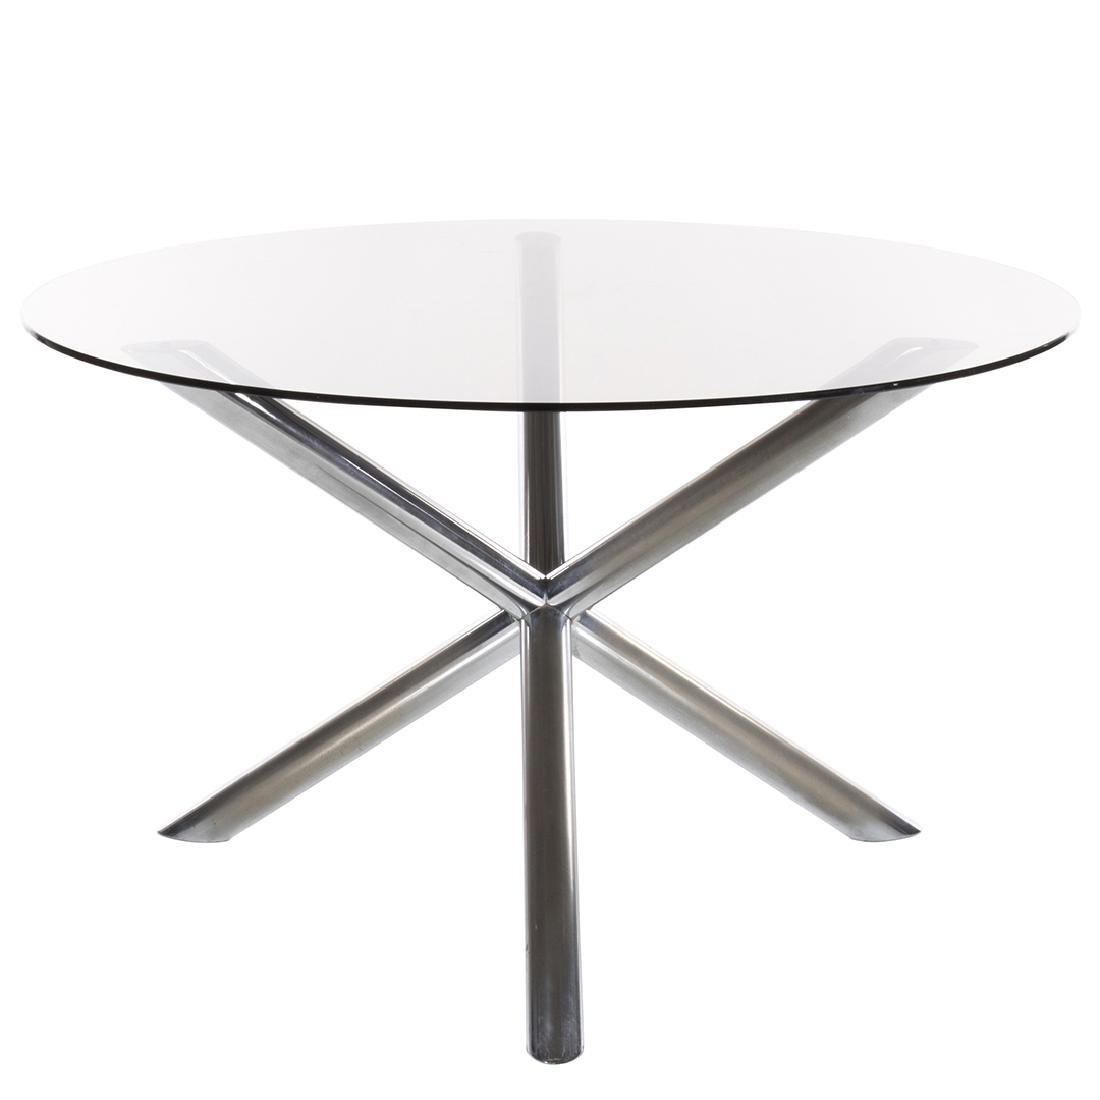 Milo Baughman Jack Table